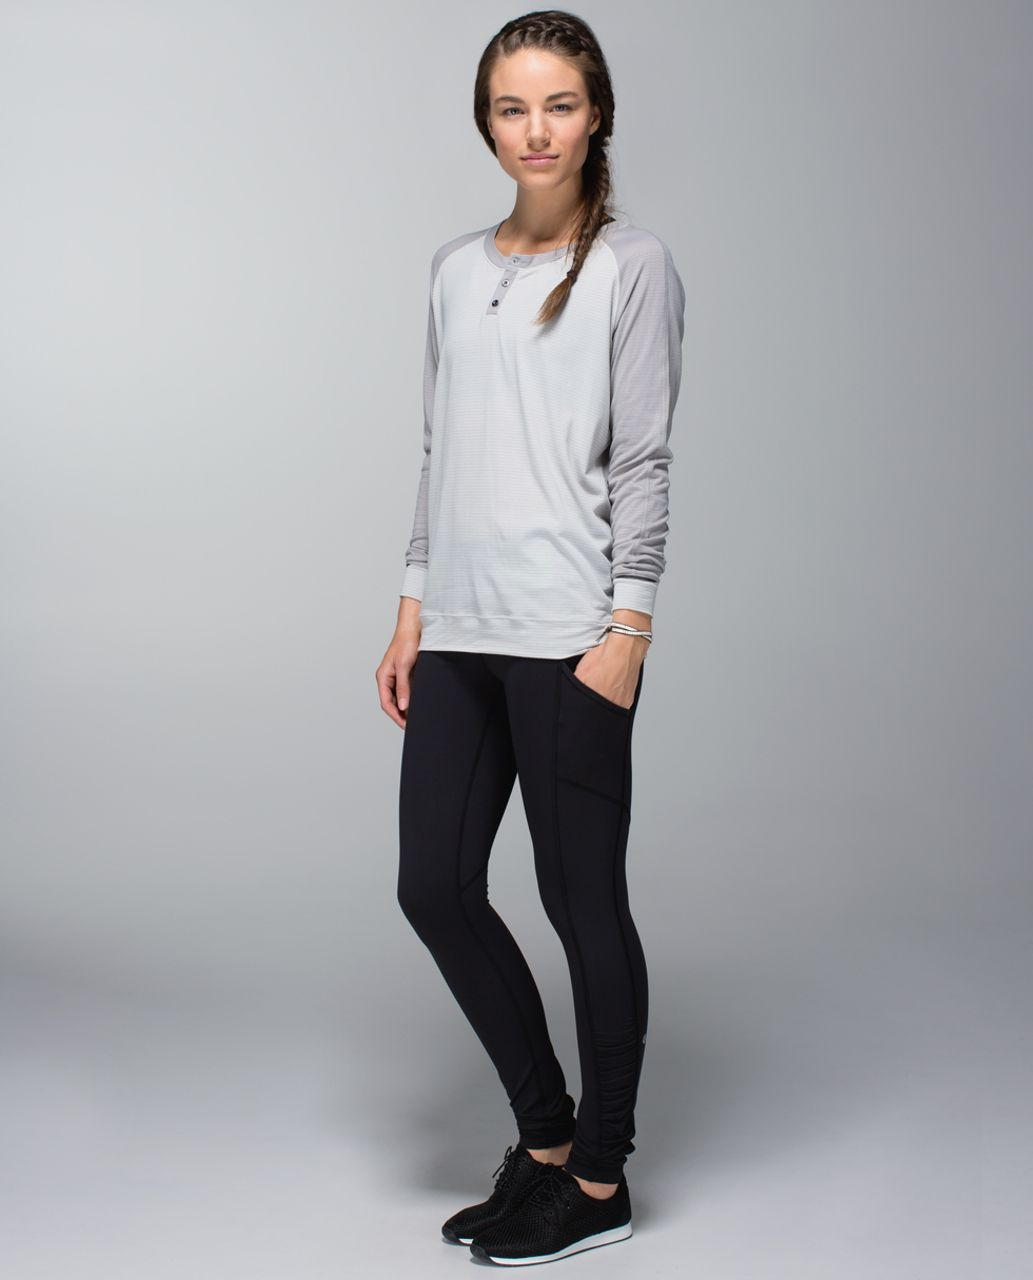 Lululemon Speed Tight *Interlock - Black / Quilt Winter 13-26